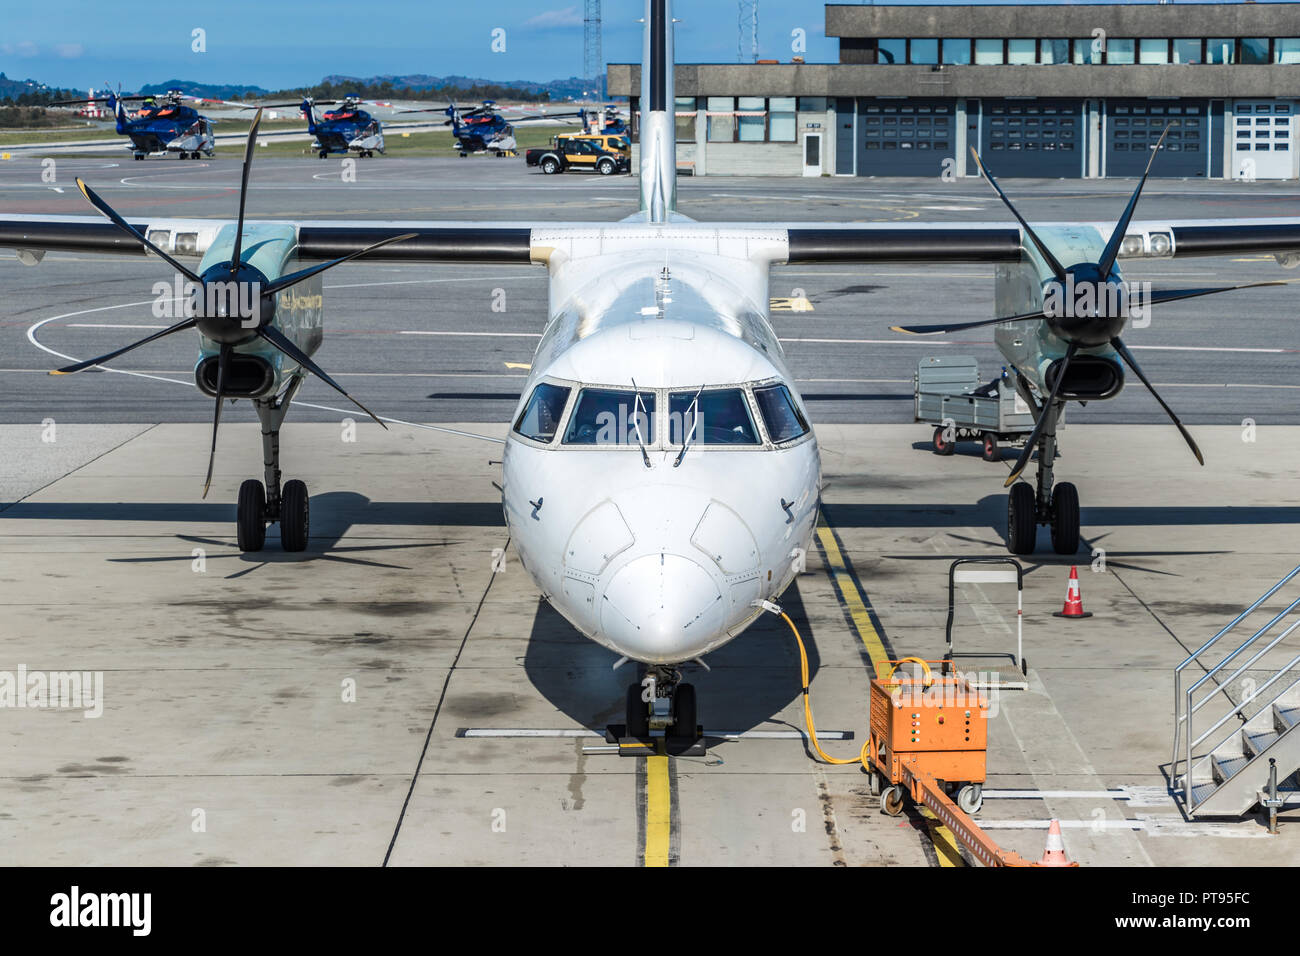 An passenger airplane twin turboprop parked next to a jetway at Begen International Airport, Norway. - Stock Image